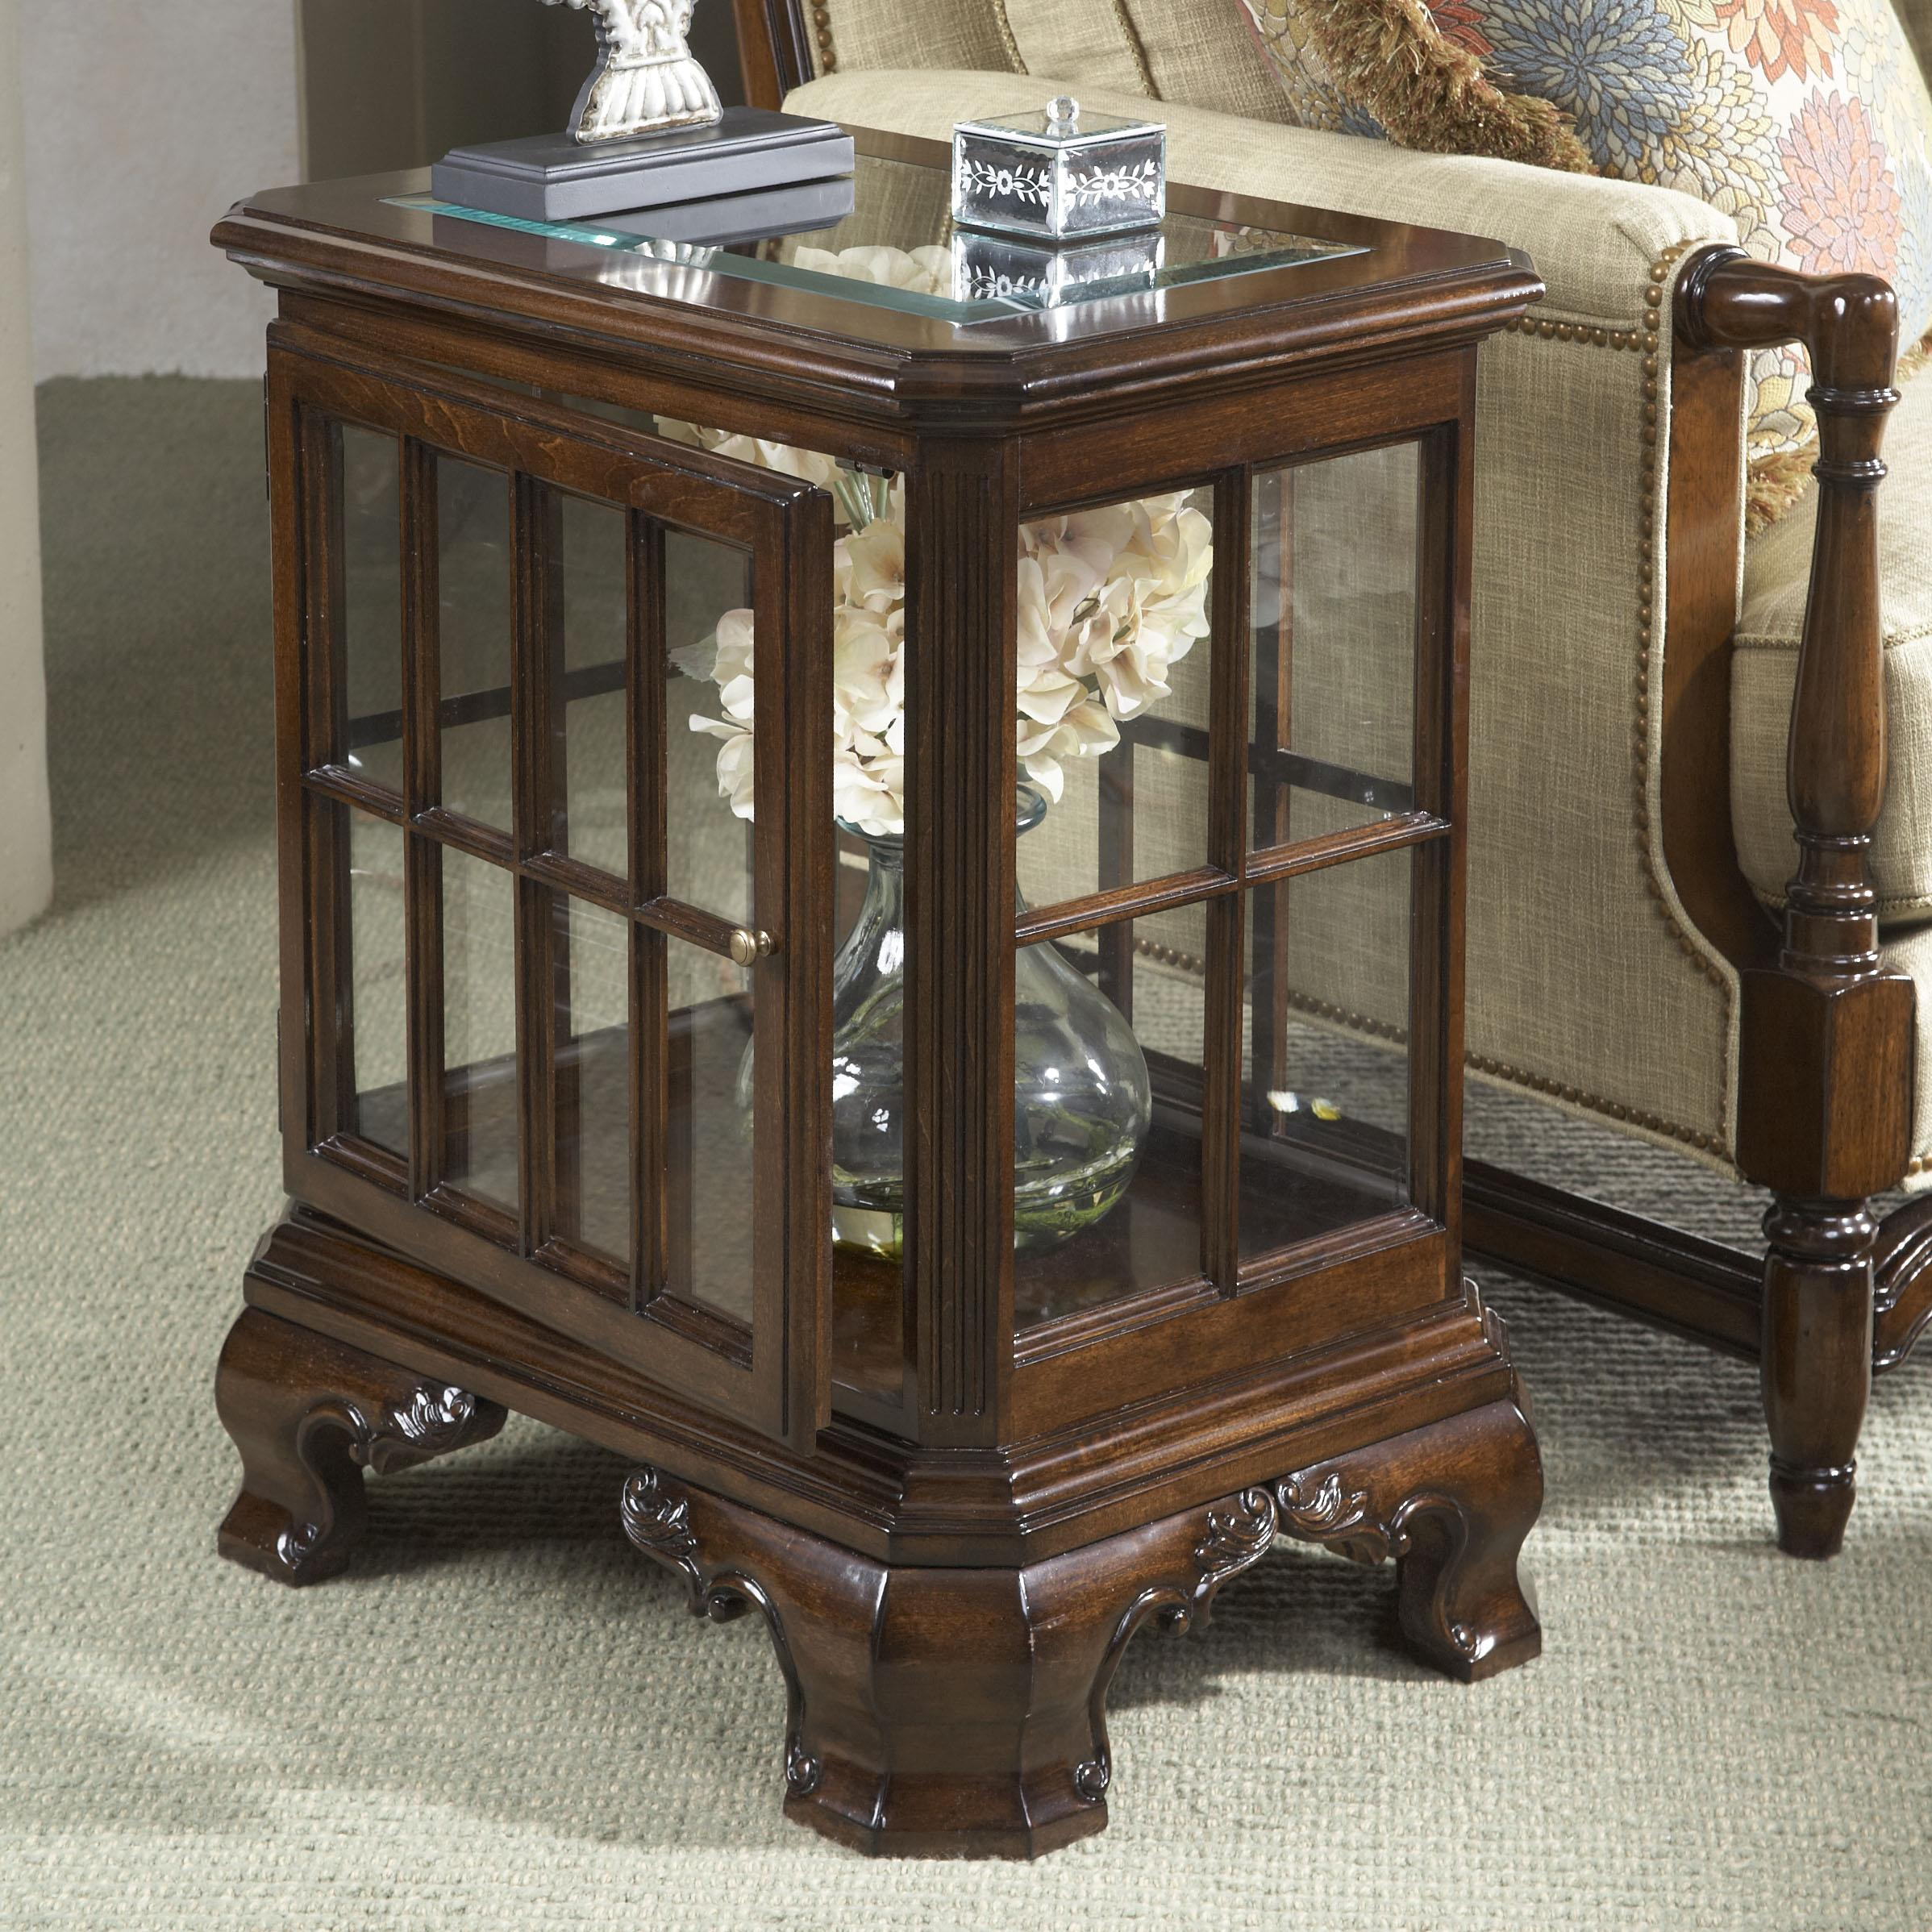 belfort signature belmont manchester curio table with glass top and products fine furniture design color american cherry wood end tables media storage extra long entryway one